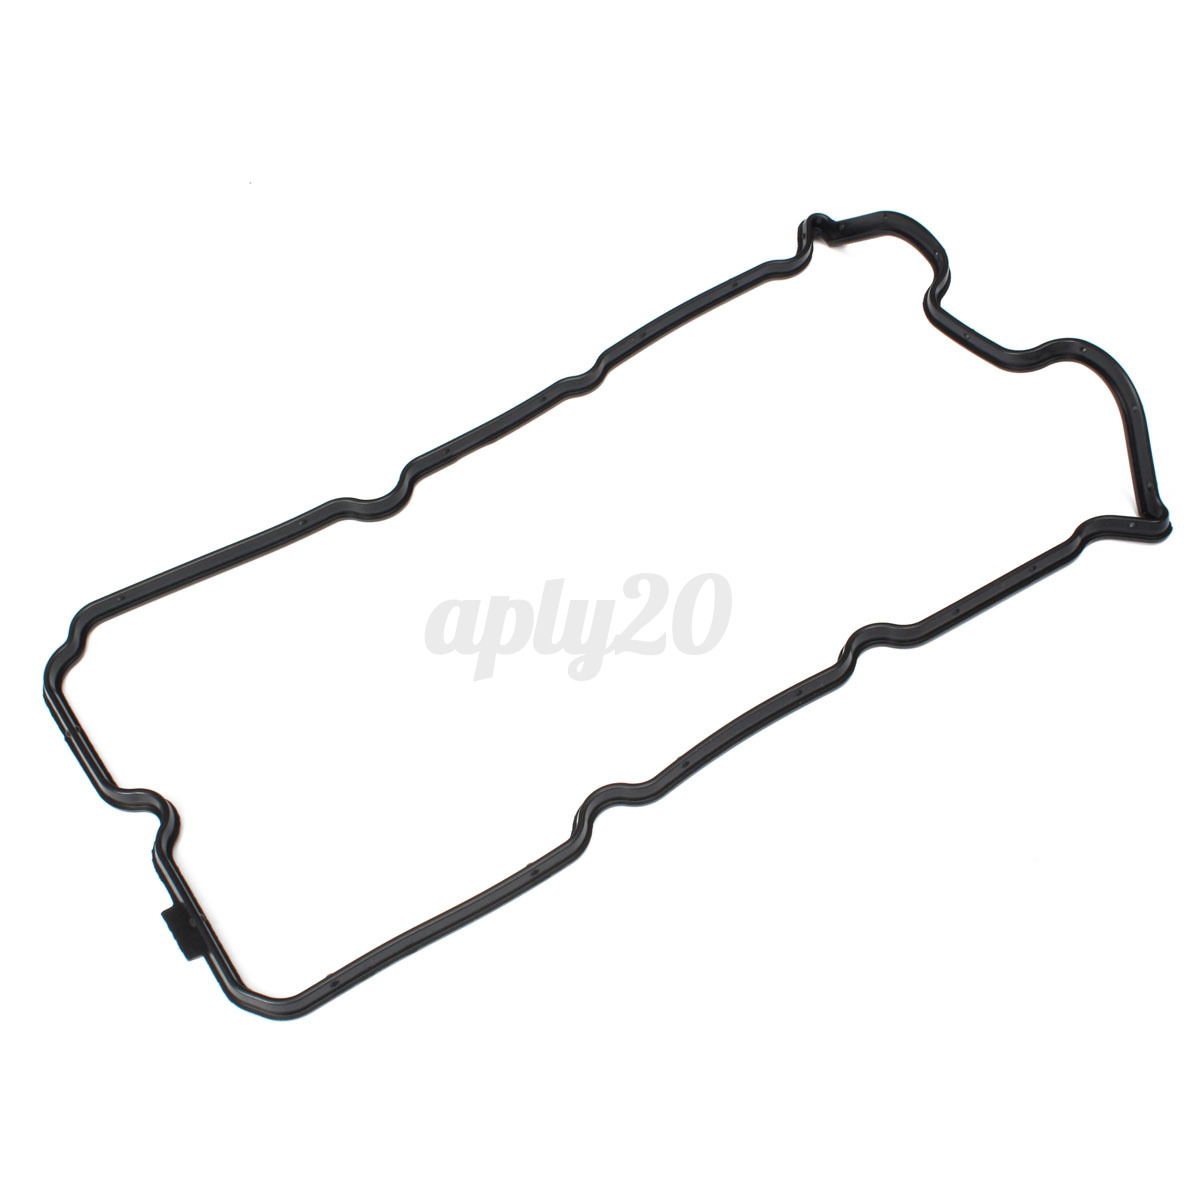 New Cylinder Valve Cover Gasket Set For 02 14 Nissan 350z Altima Frontier Maxima